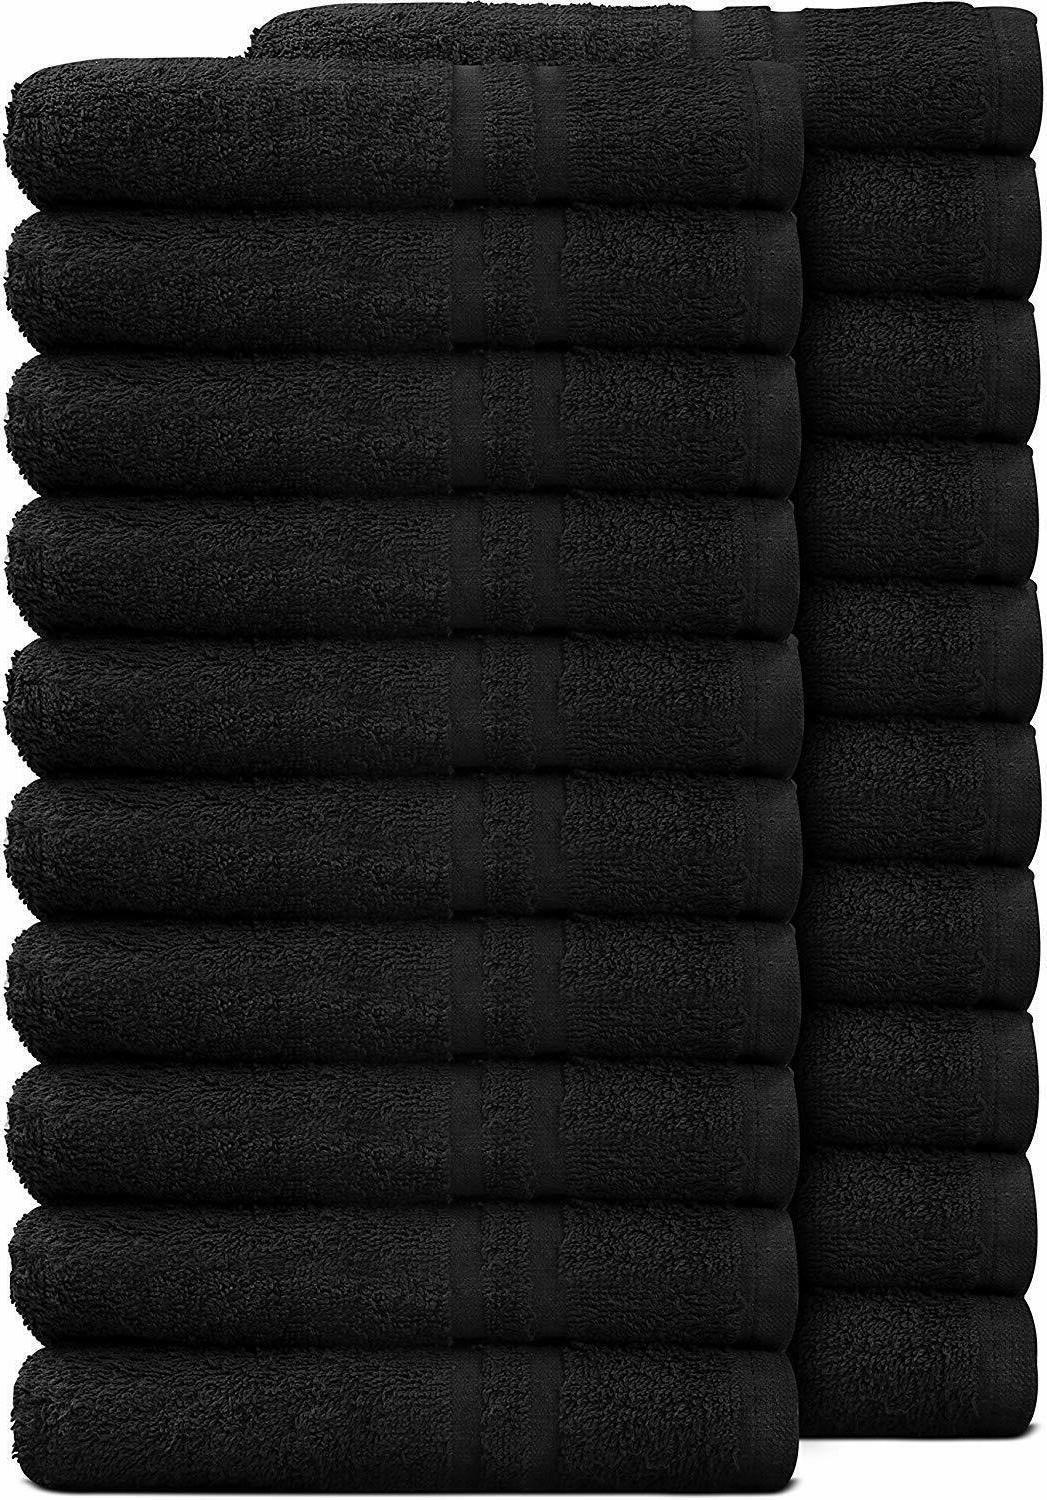 Bleach Proof Towels Cotton inches